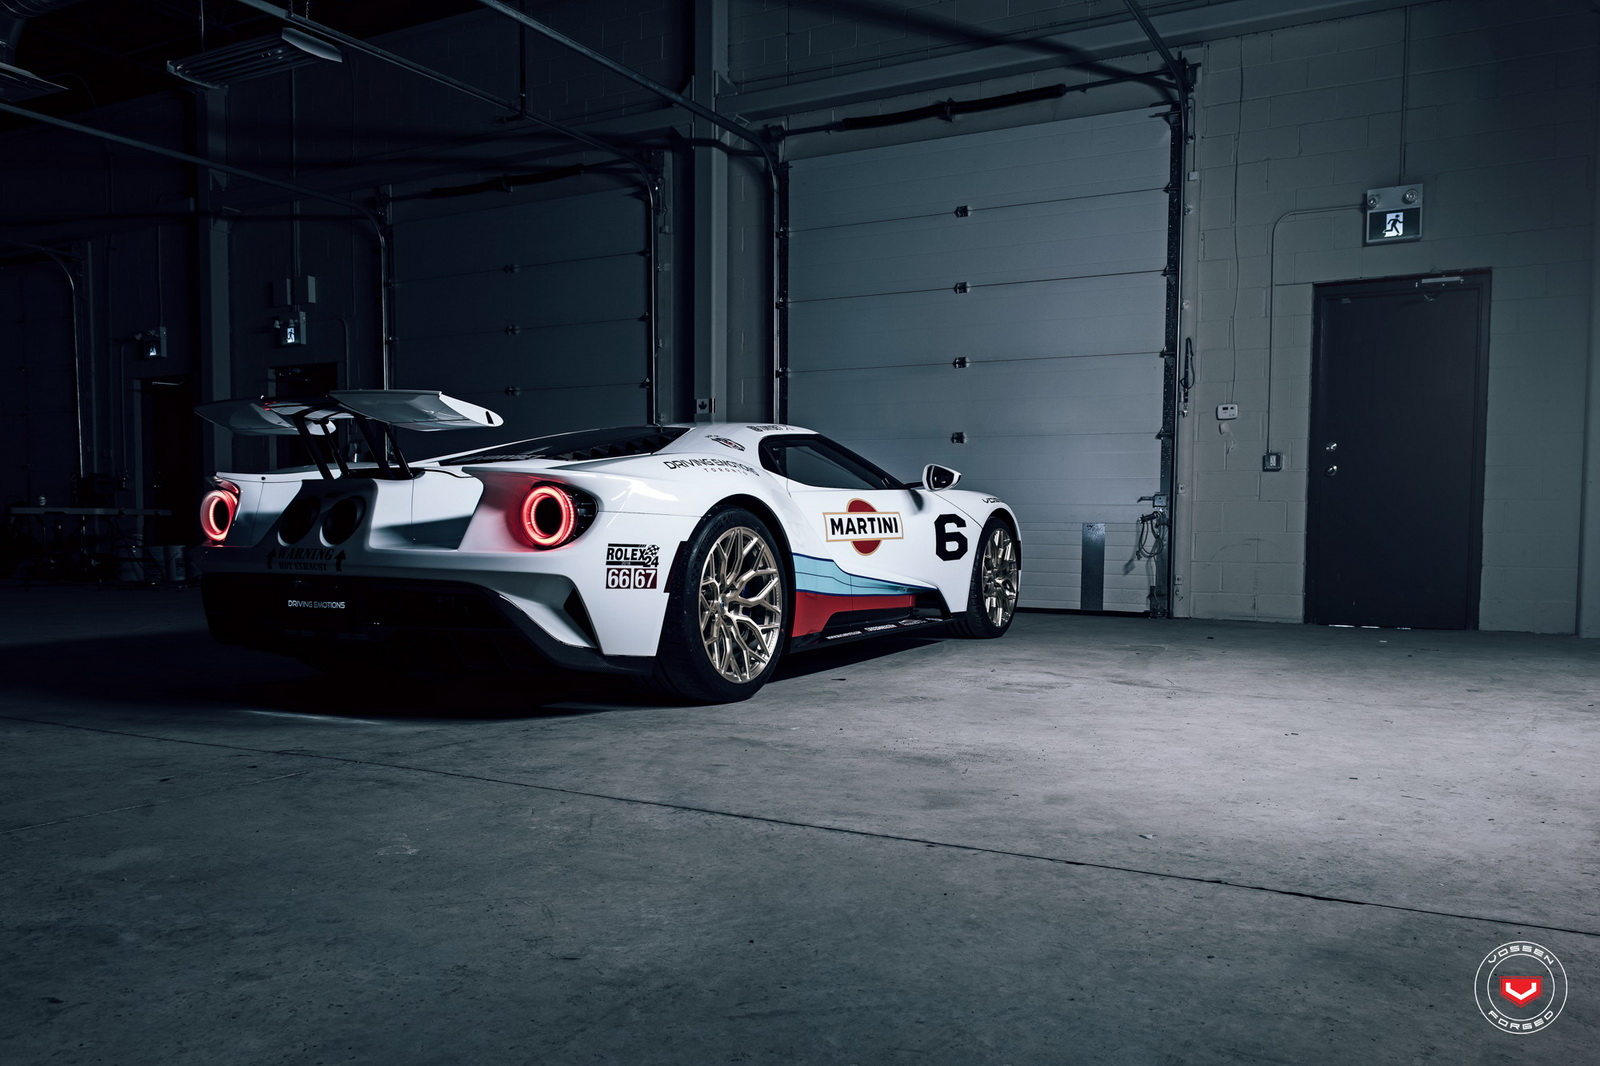 ford-gt-martini-livery-vossen-wheels-26